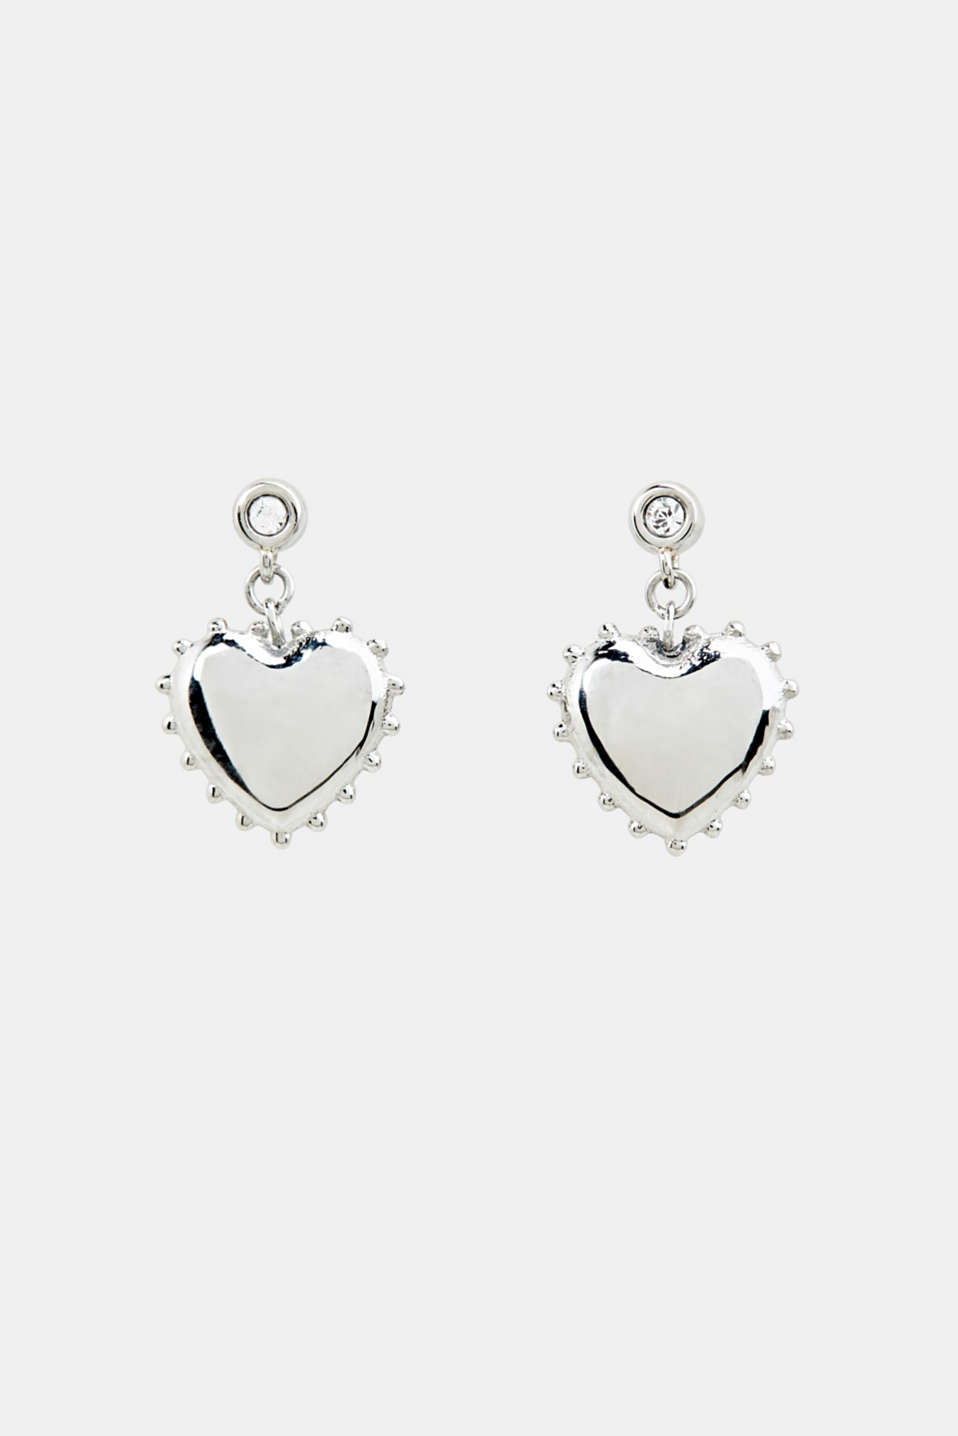 Stud earrings with heart charm, made of stainless steel, LCSILVER, detail image number 0